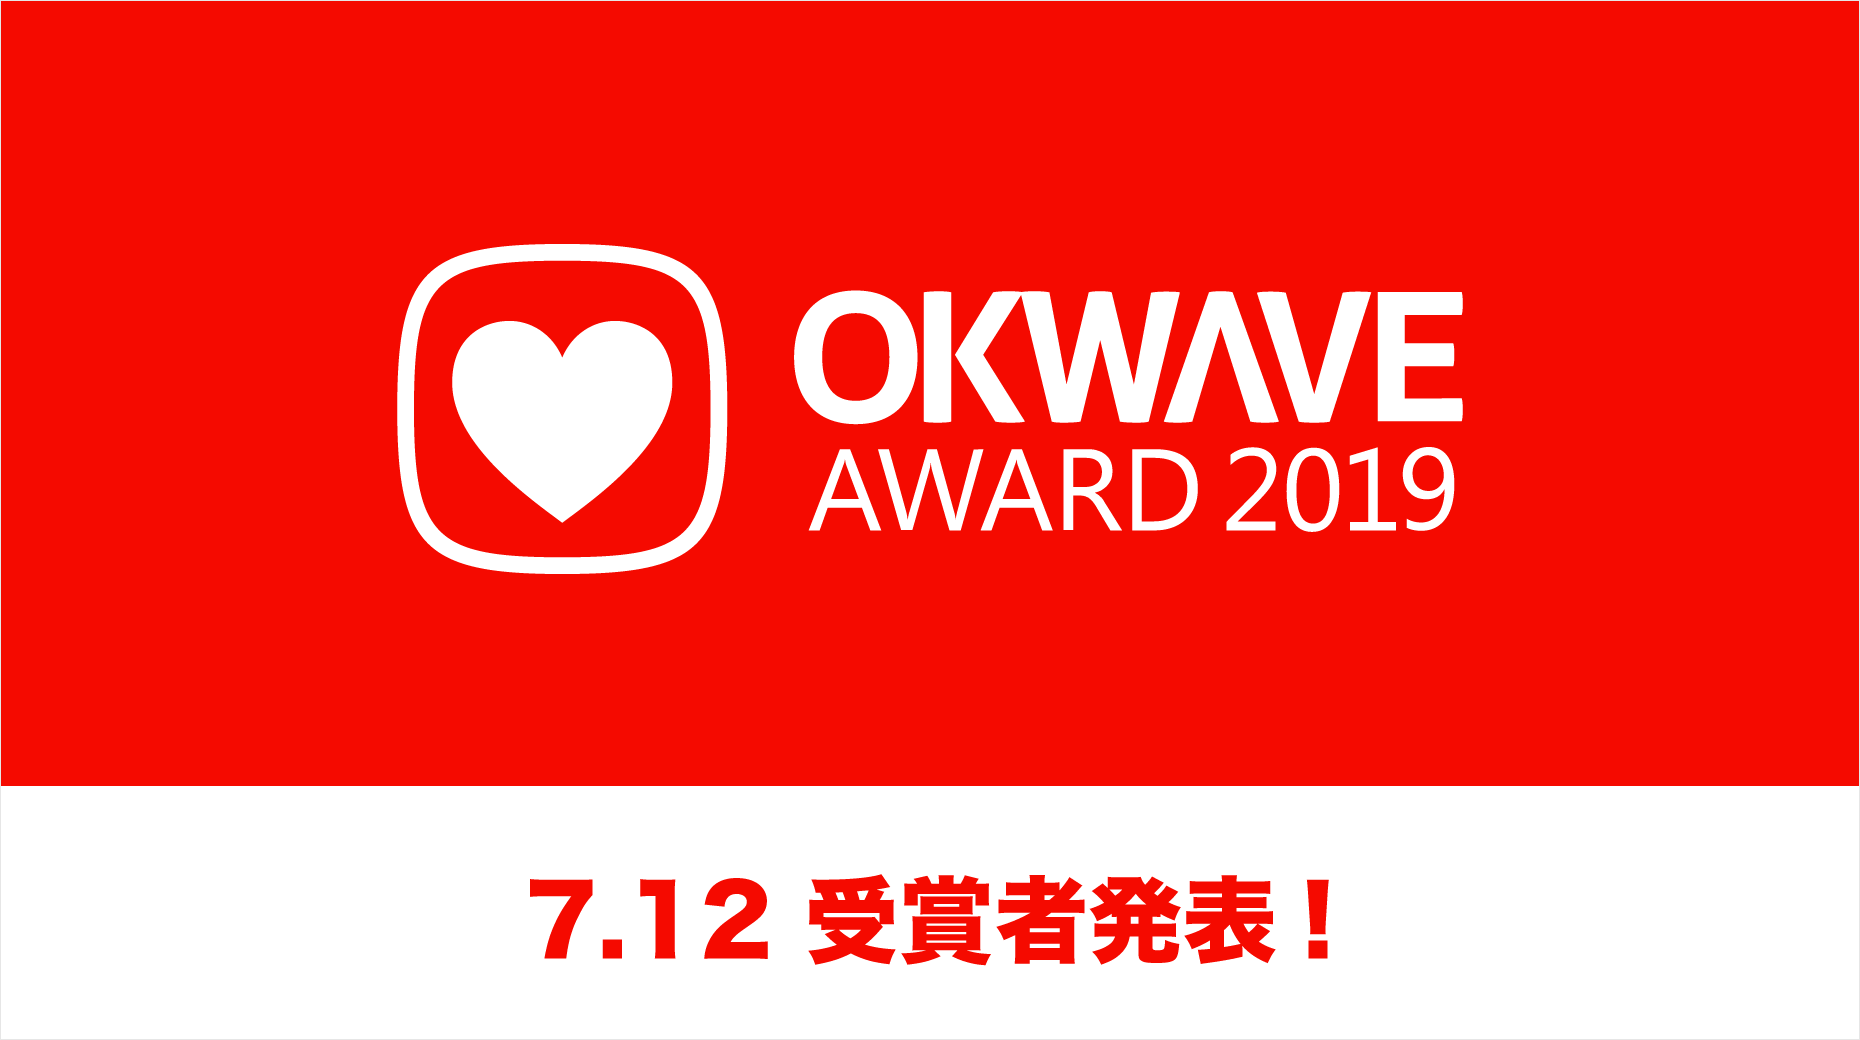 OKWAVE AWARD 2019